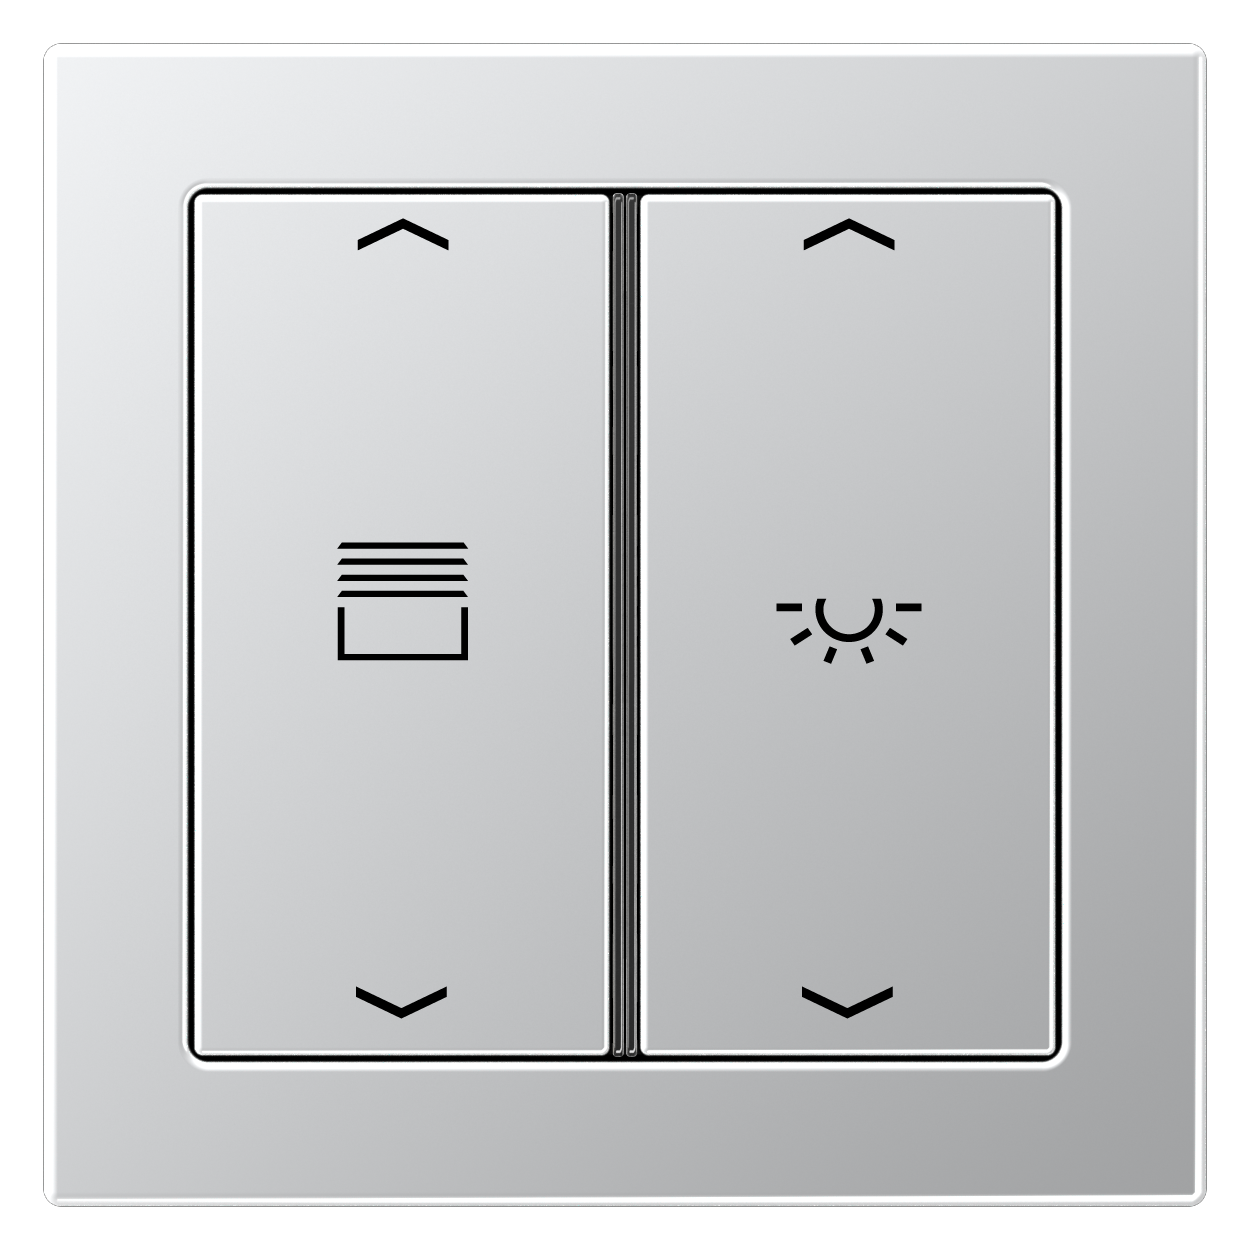 JUNG_Flat_Design_aluminium_2button_symbols